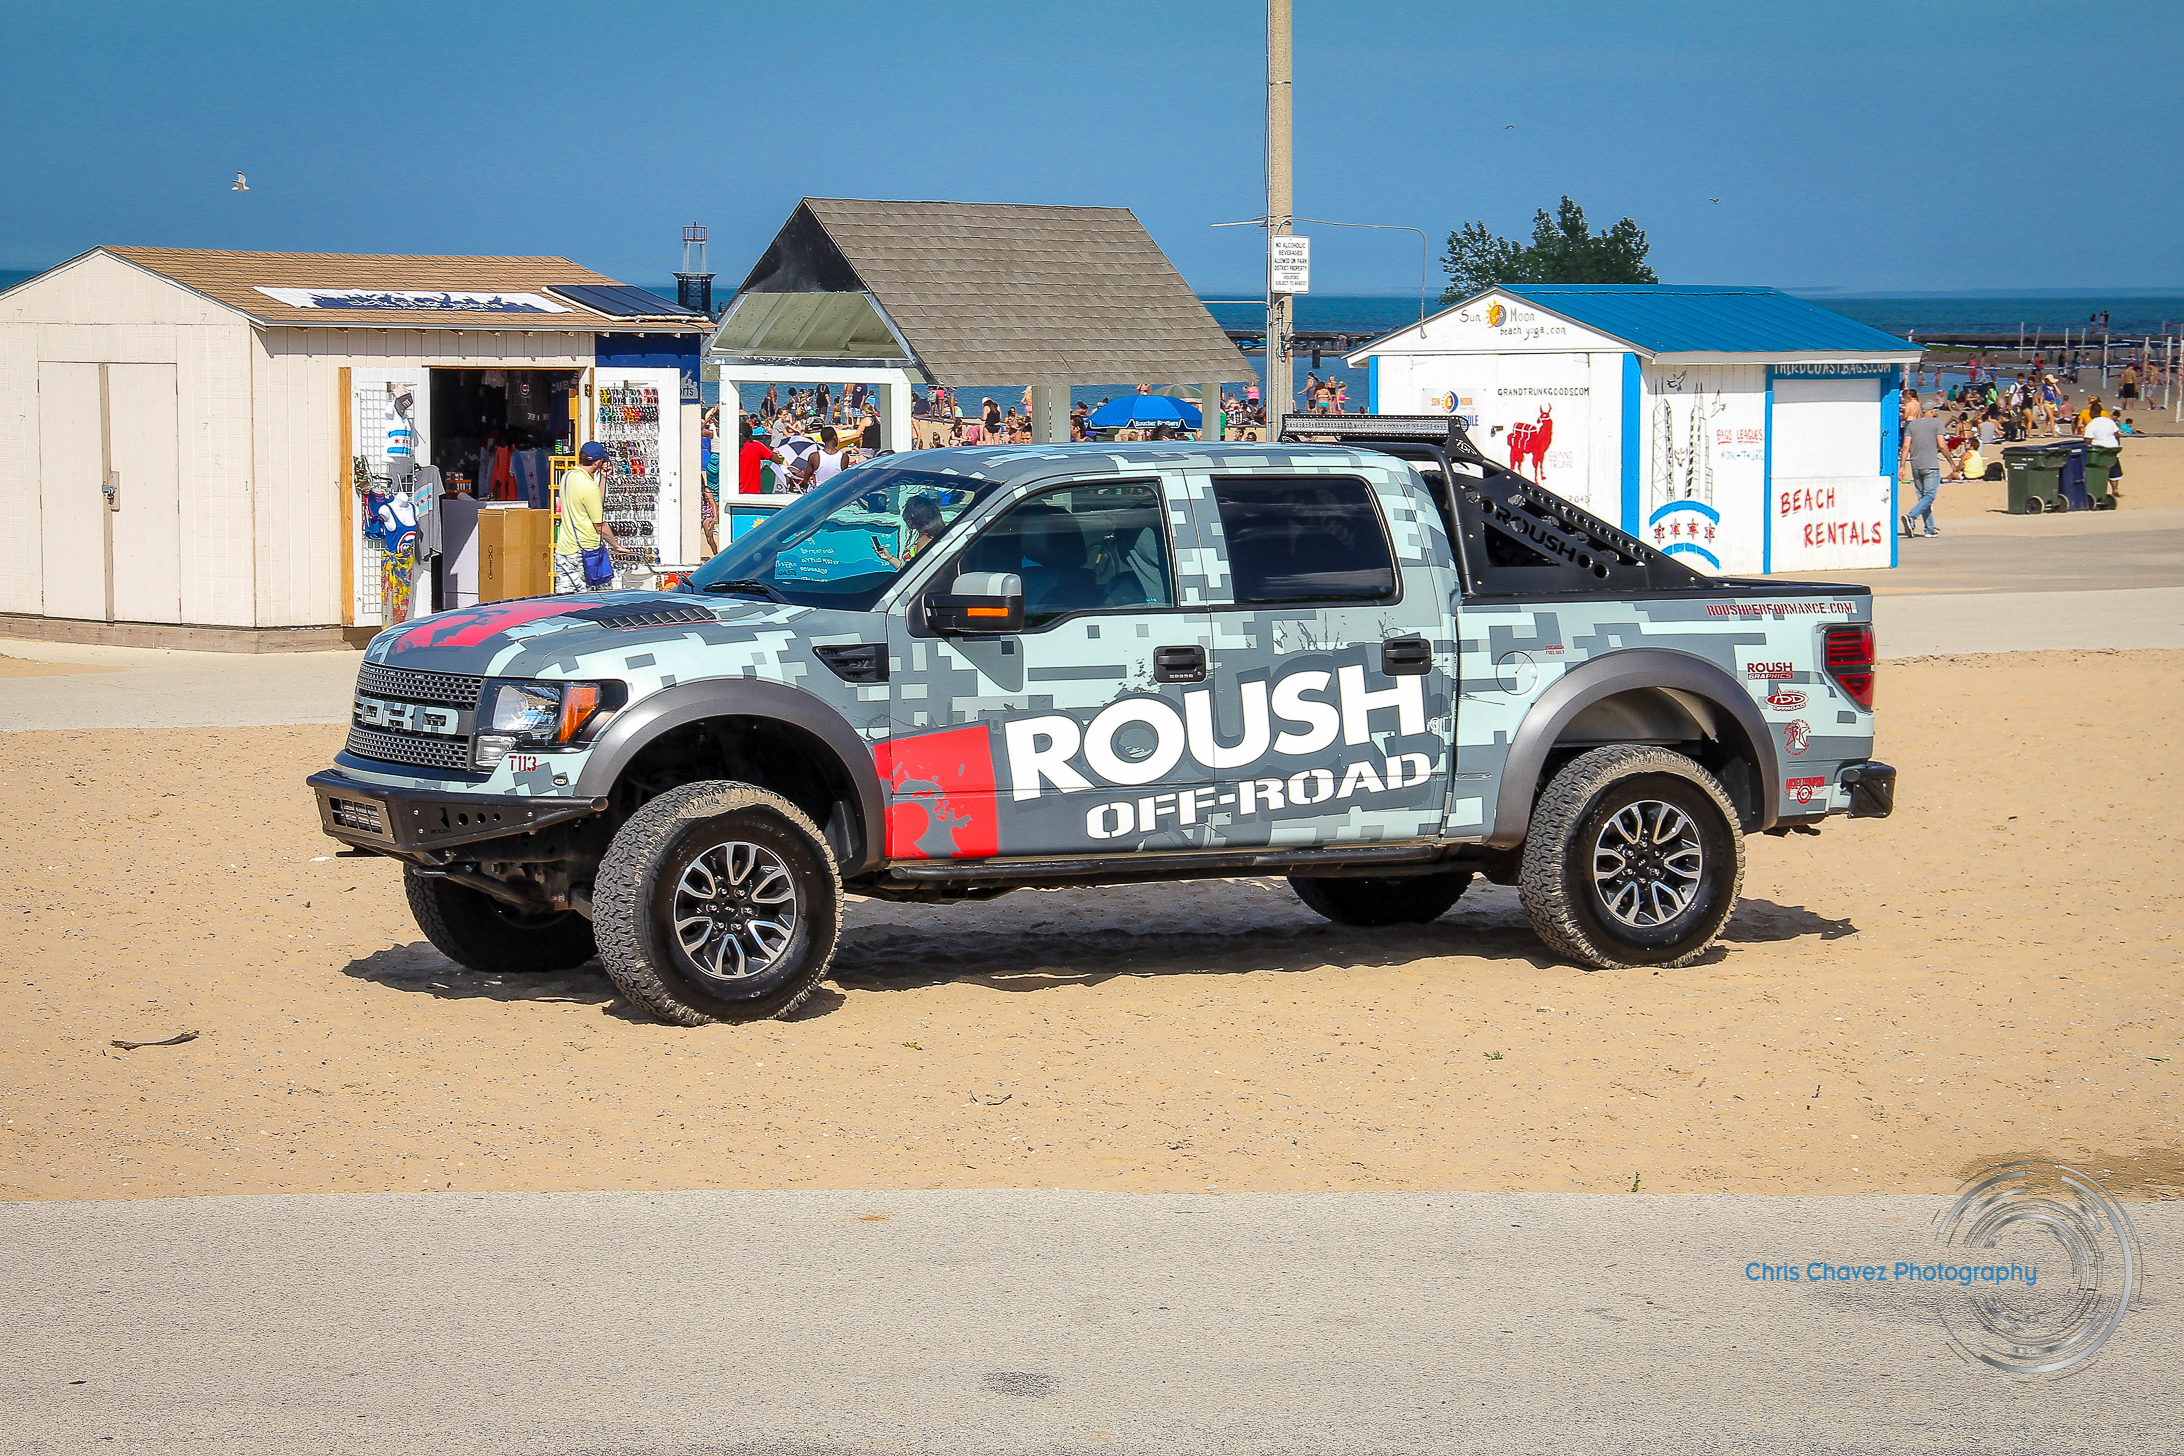 Roush.f150.wm-7.jpg